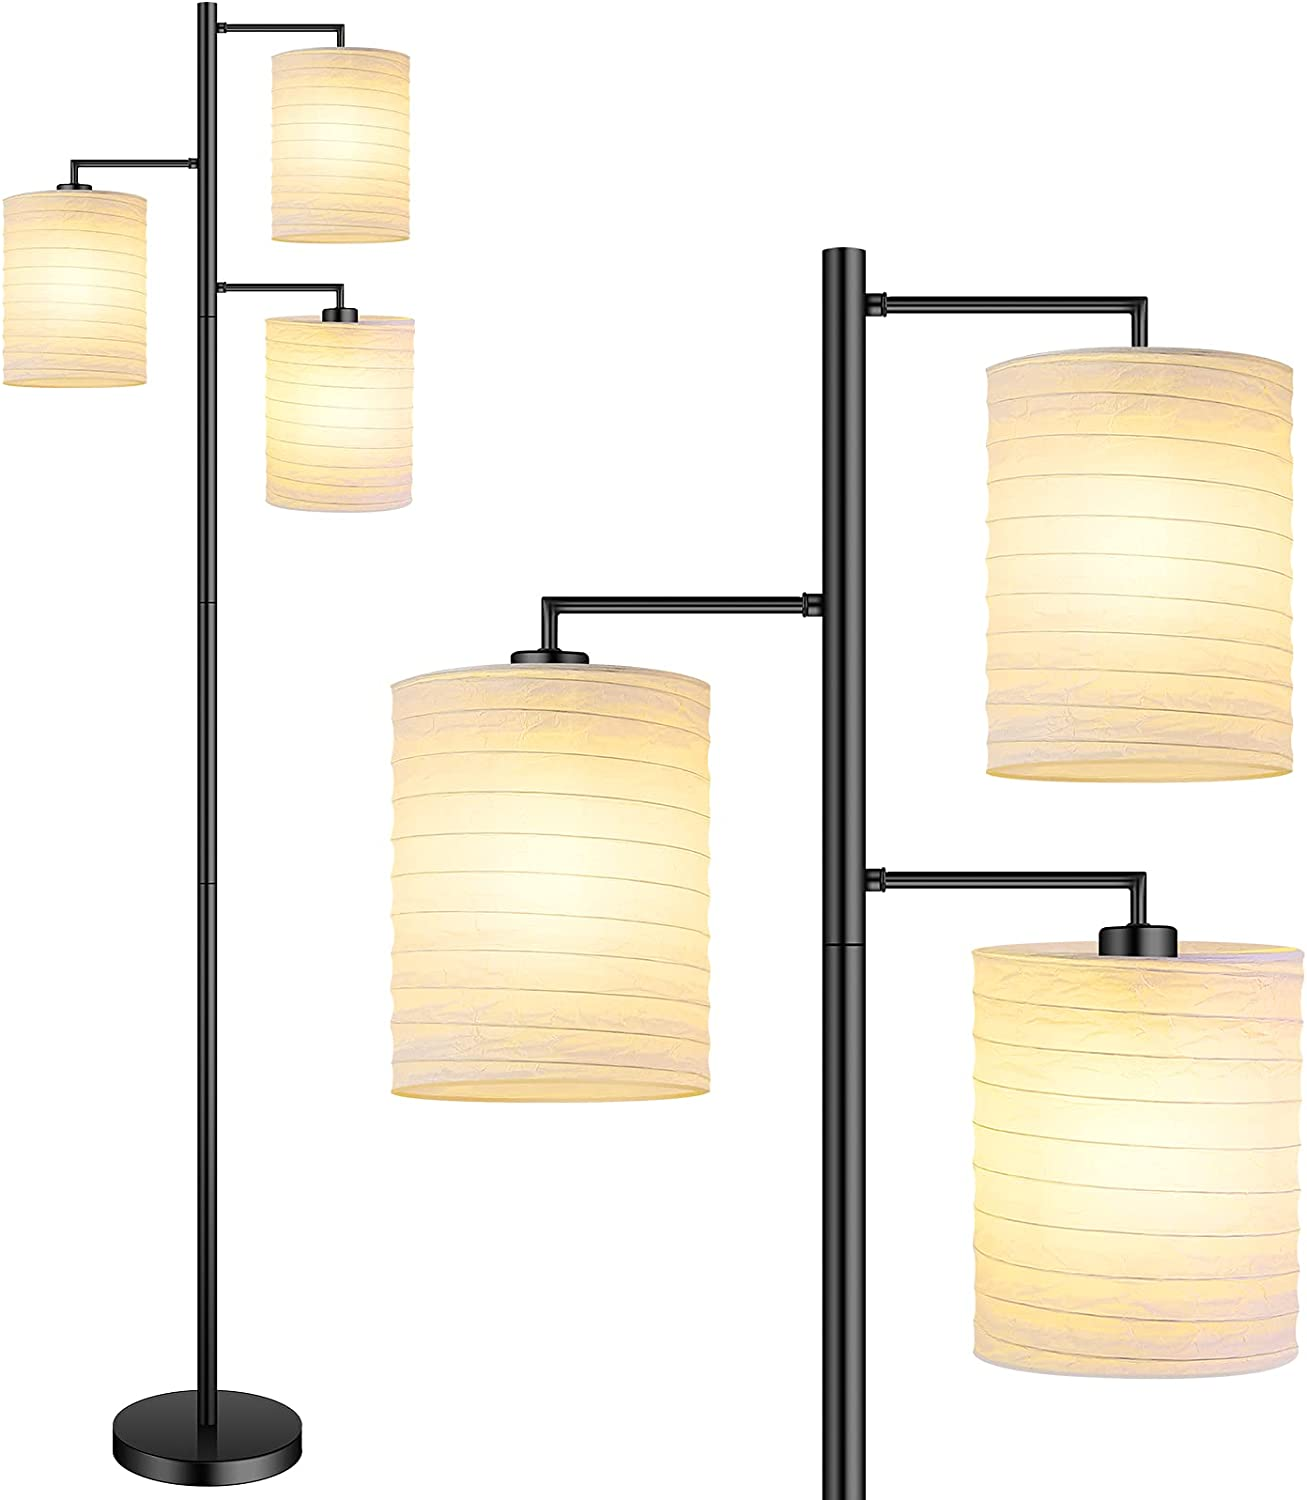 3 Lights Floor Lamp Tall Tree Floor Lamp with Asian Lantern Shade Black Standing Pole Light w/E26 Base Contemporary/Modern Foot Pedal Reading Lamp for Bedroom/Living Room/Office(Bulbs not Included)